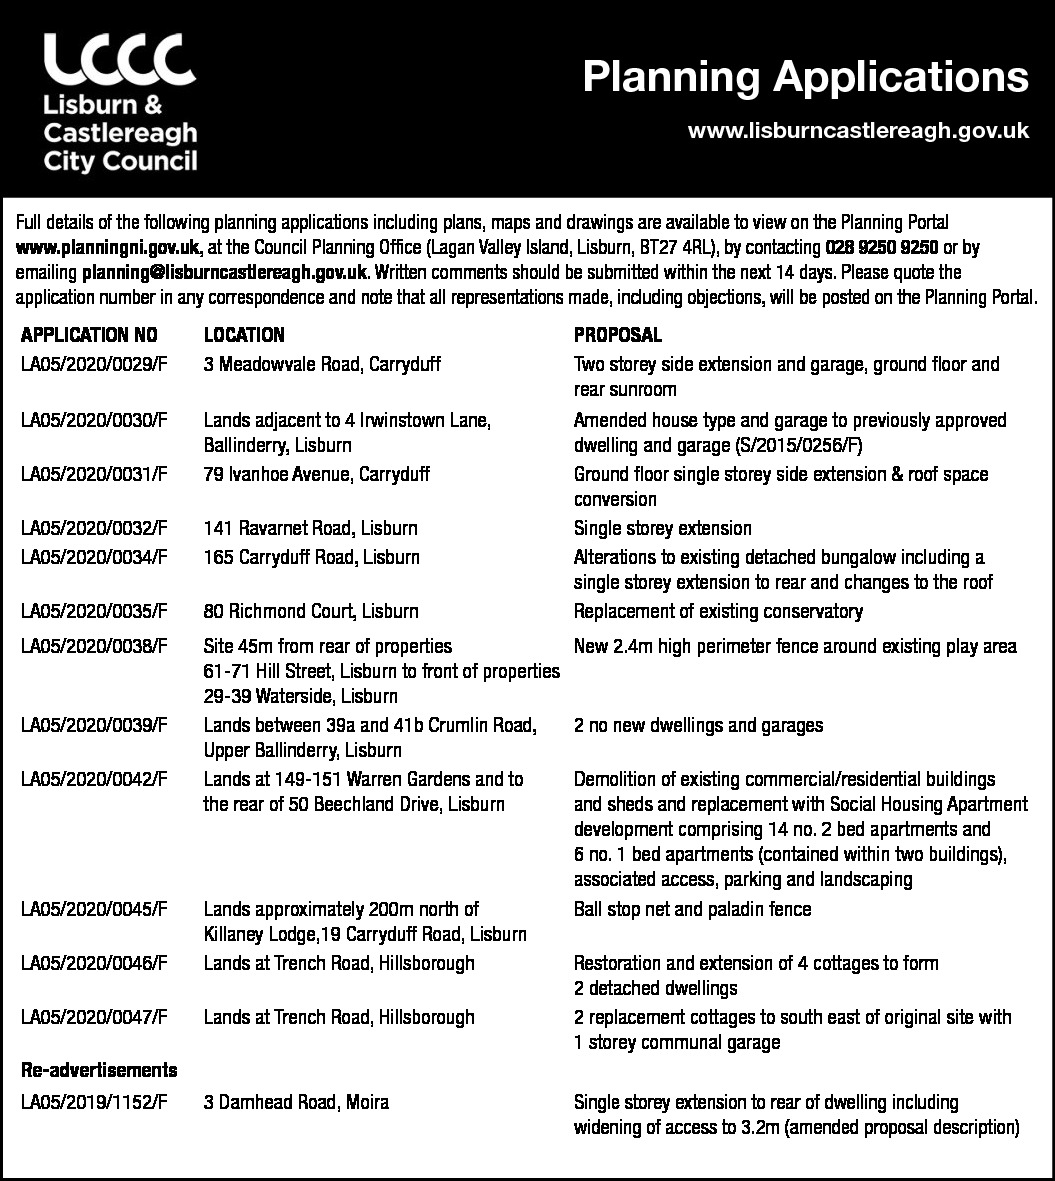 Planning Applications - Lisburn & Castlereagh City Council